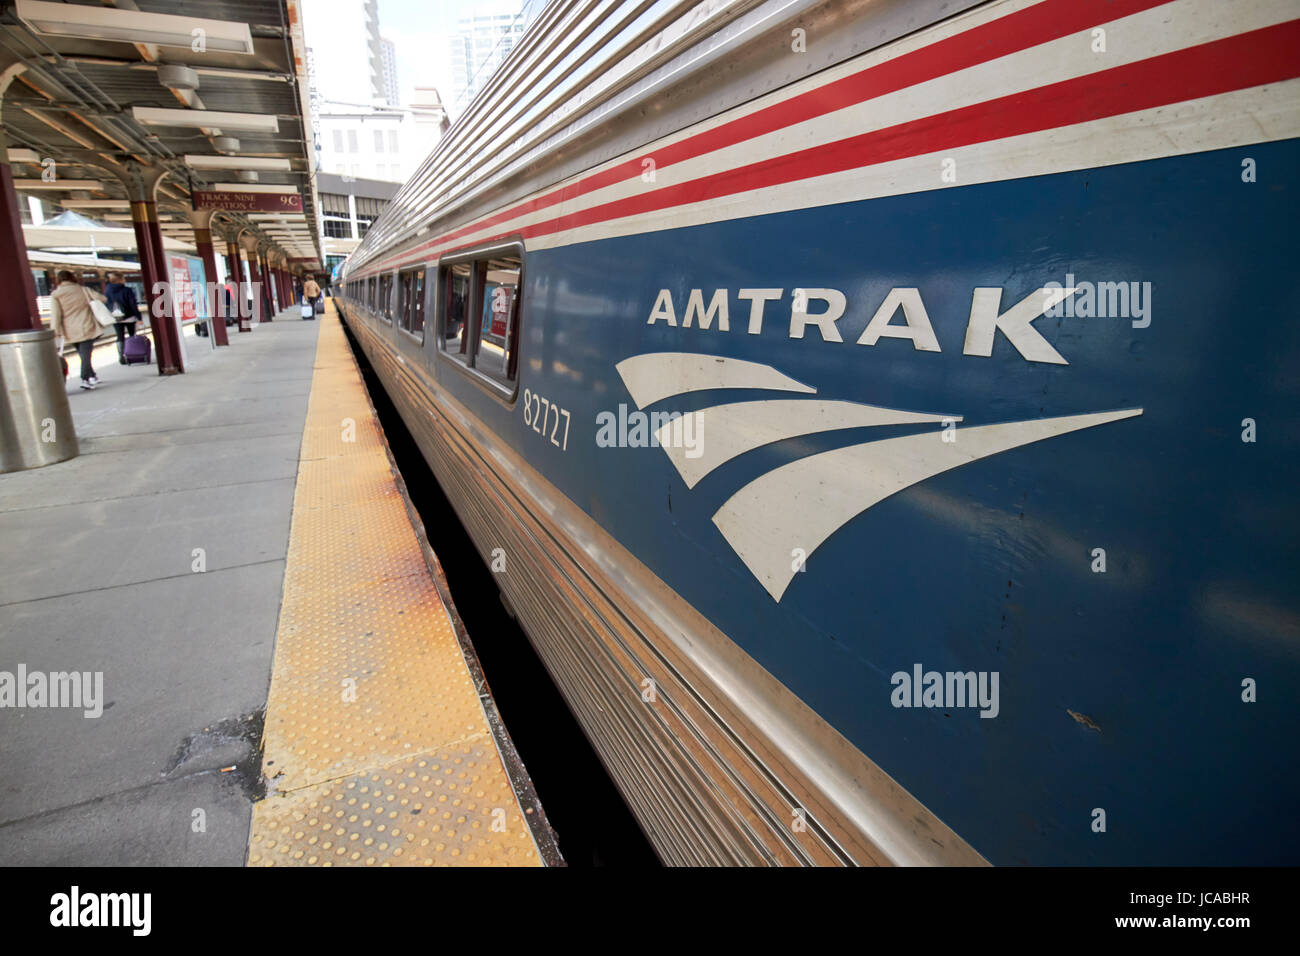 Amtrak Logo auf einen Regionalzug in South Street Station Boston USA angekommen Stockbild